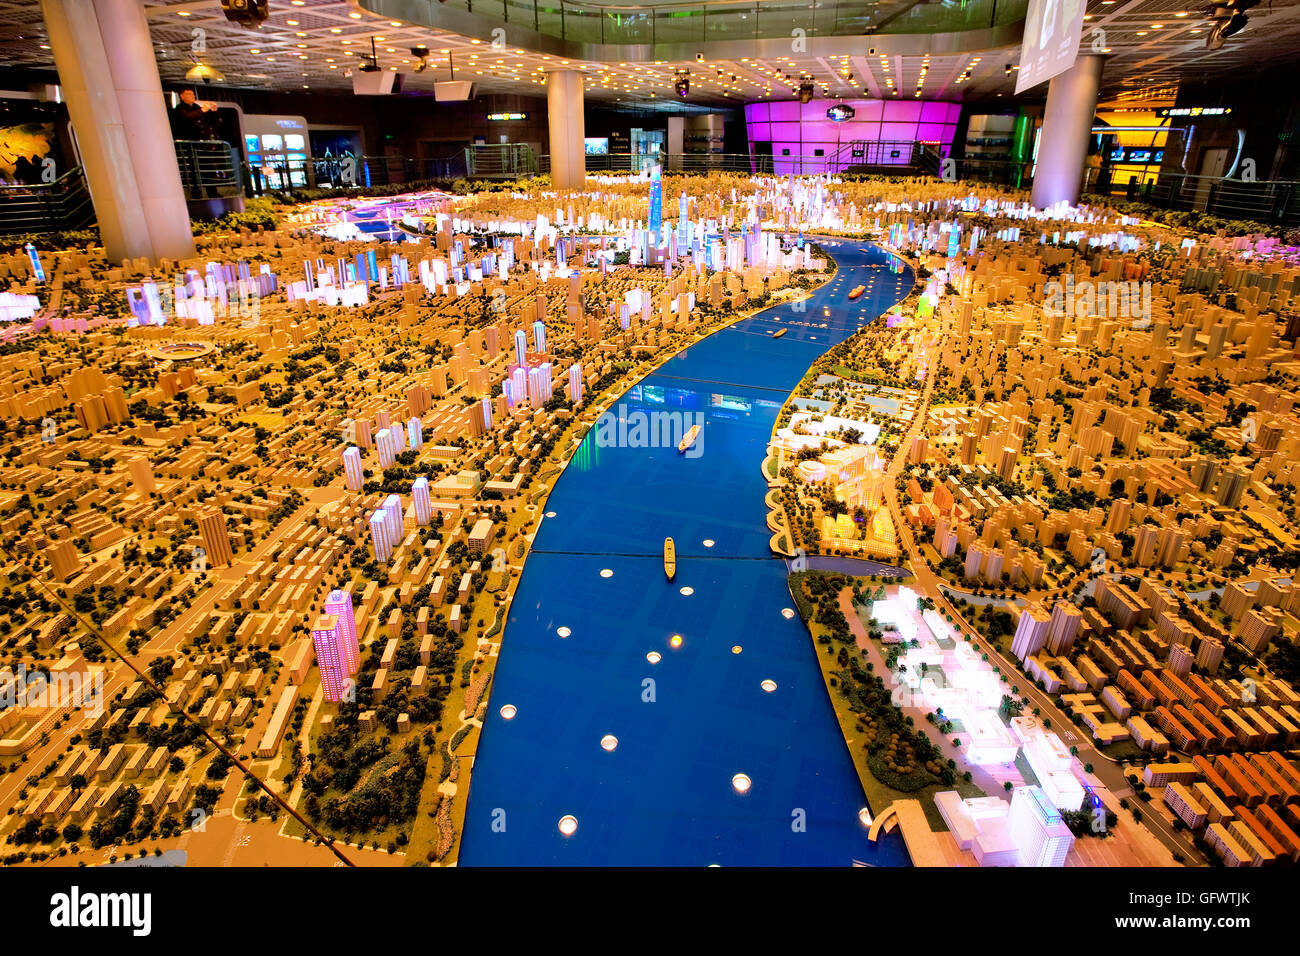 Scale model of Shanghai at the Shanghai Urban Planning Exhibition Center, China Stock Photo